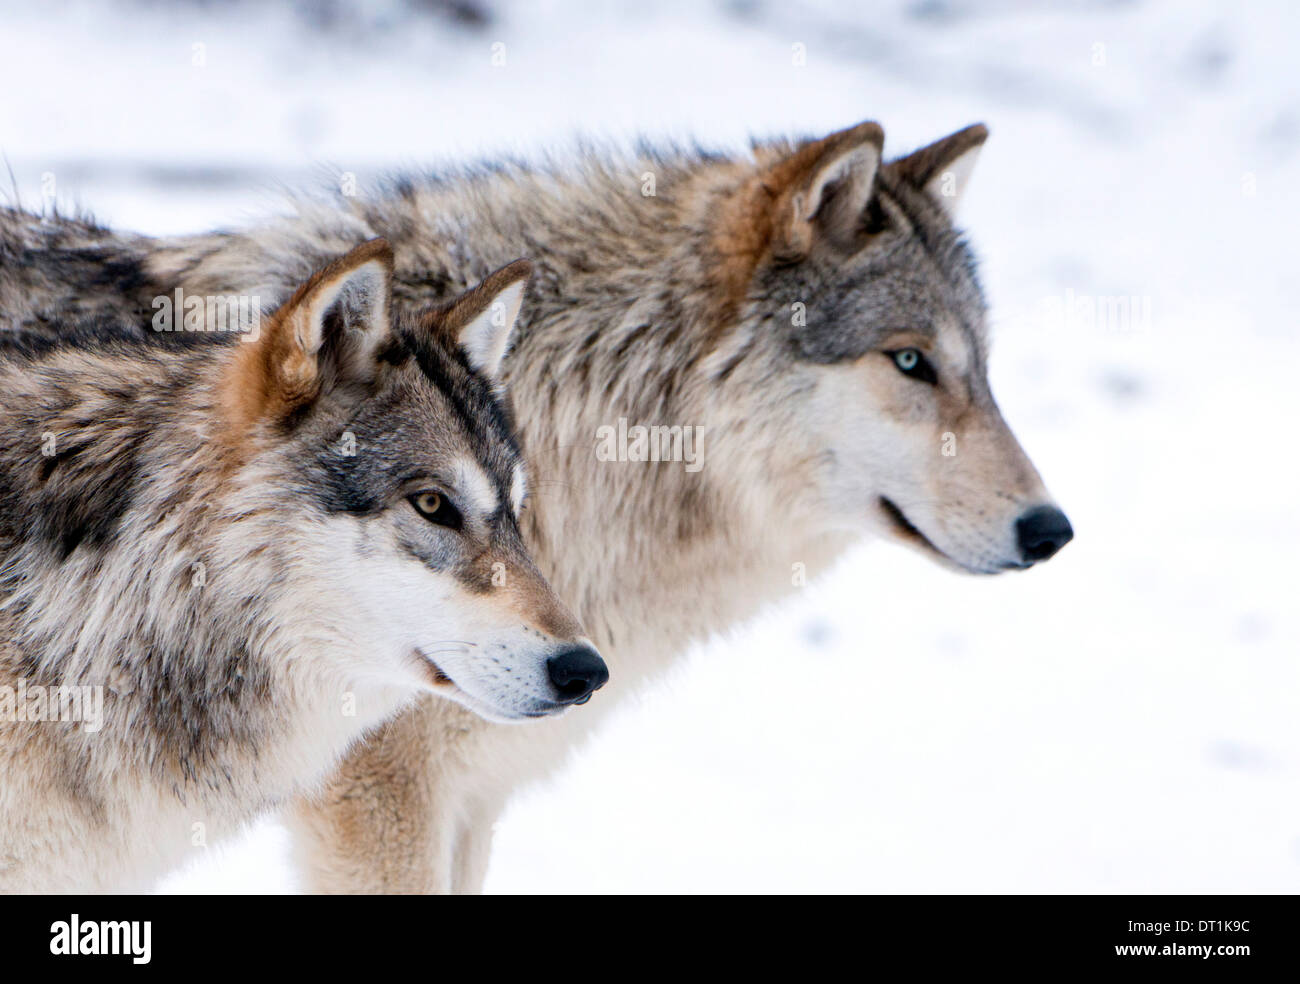 Two sub adult North American Timber wolves (Canis lupus) in snow, Austria, Europe - Stock Image